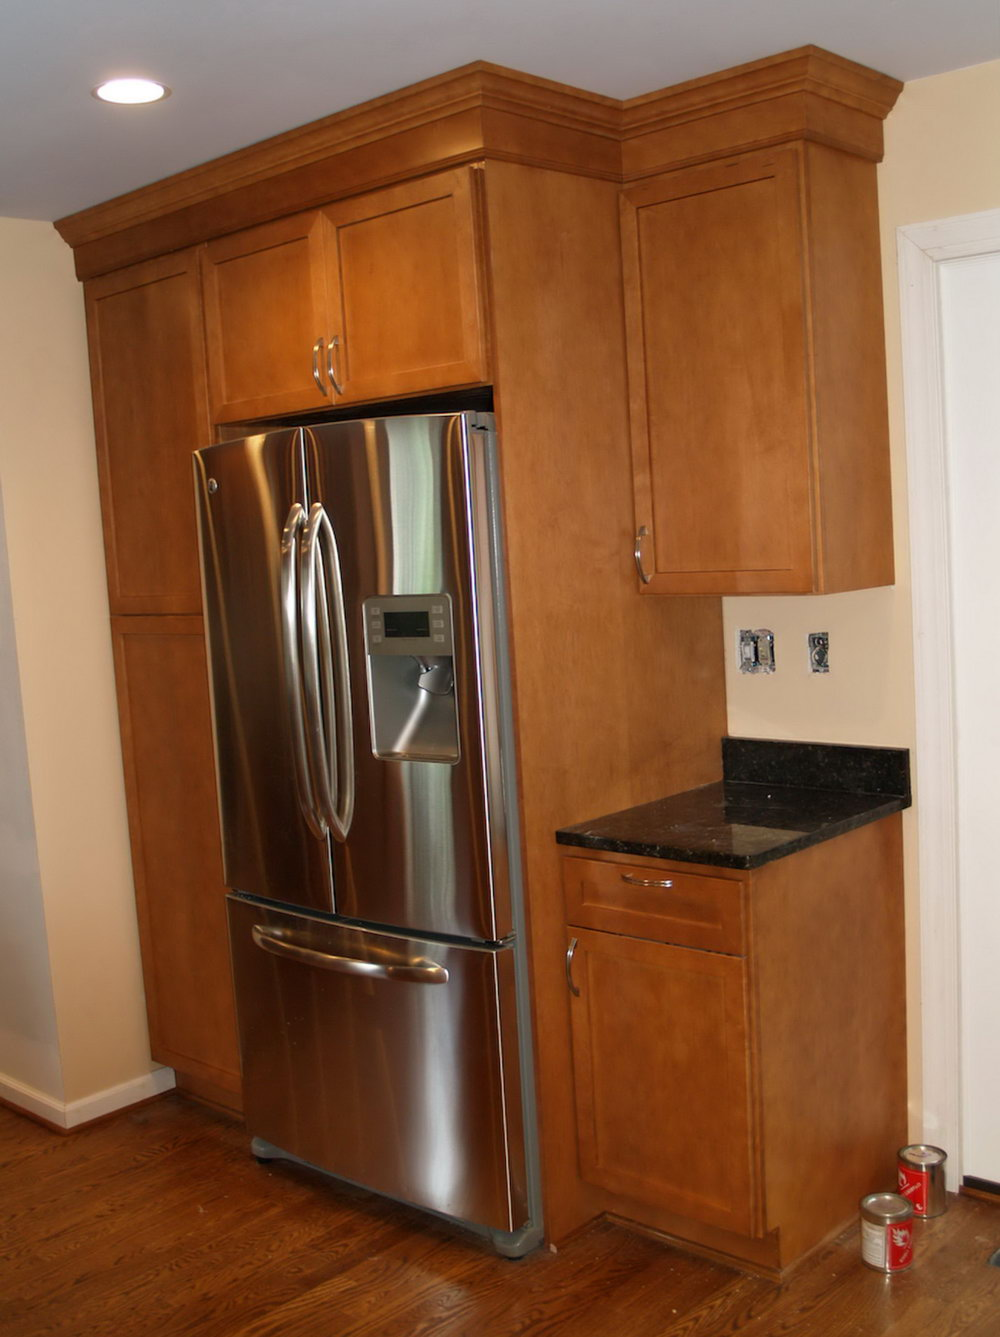 Kitchen Cabinets Around Refrigerator